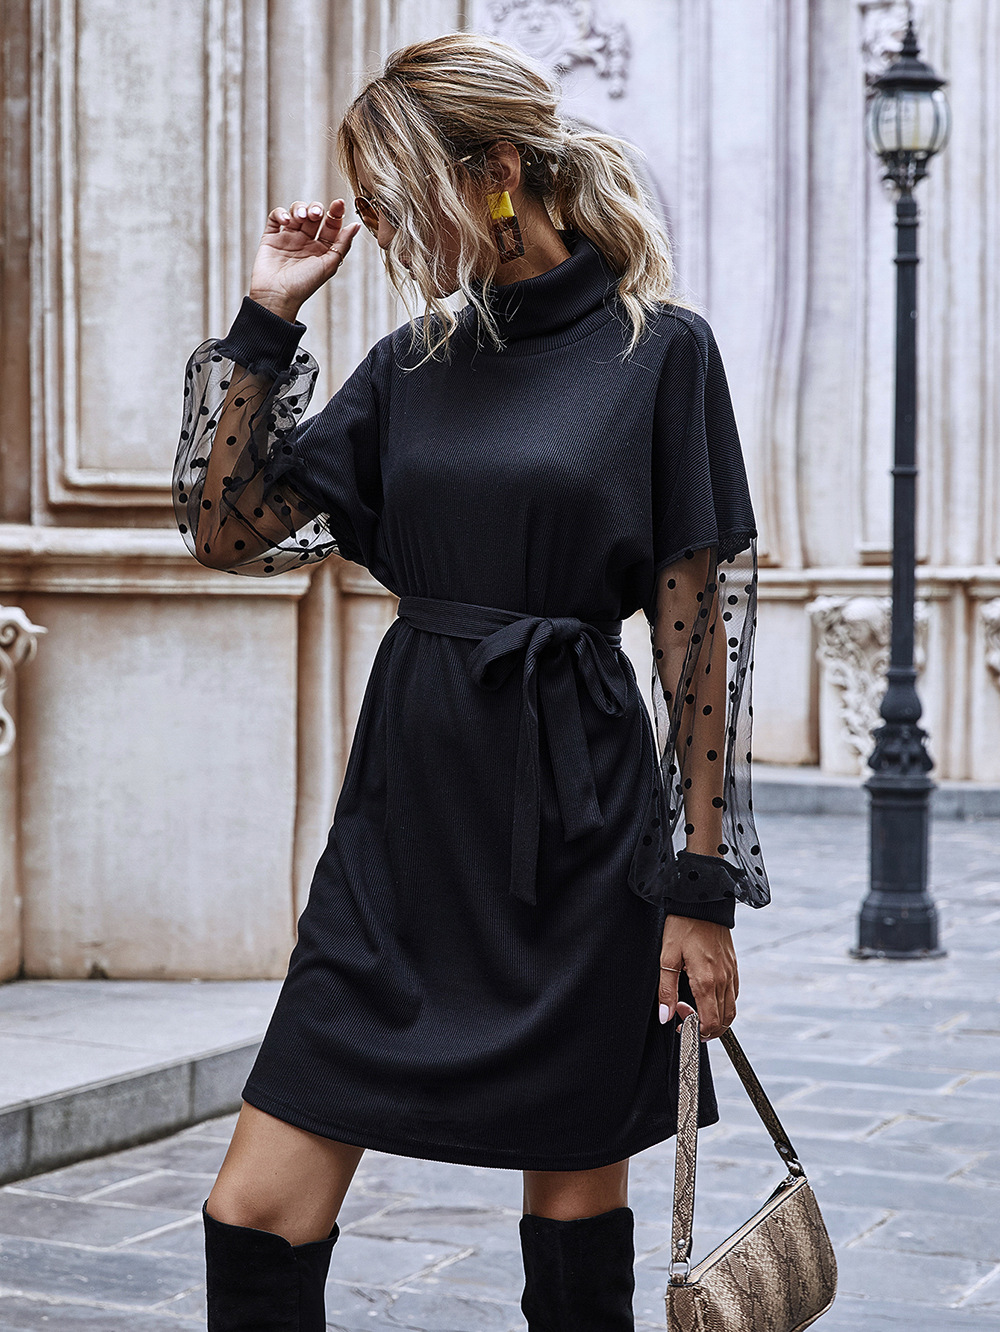 autumn women's solid color stitching mid-length dresss long-sleeved polka dot wholesale NHDF27